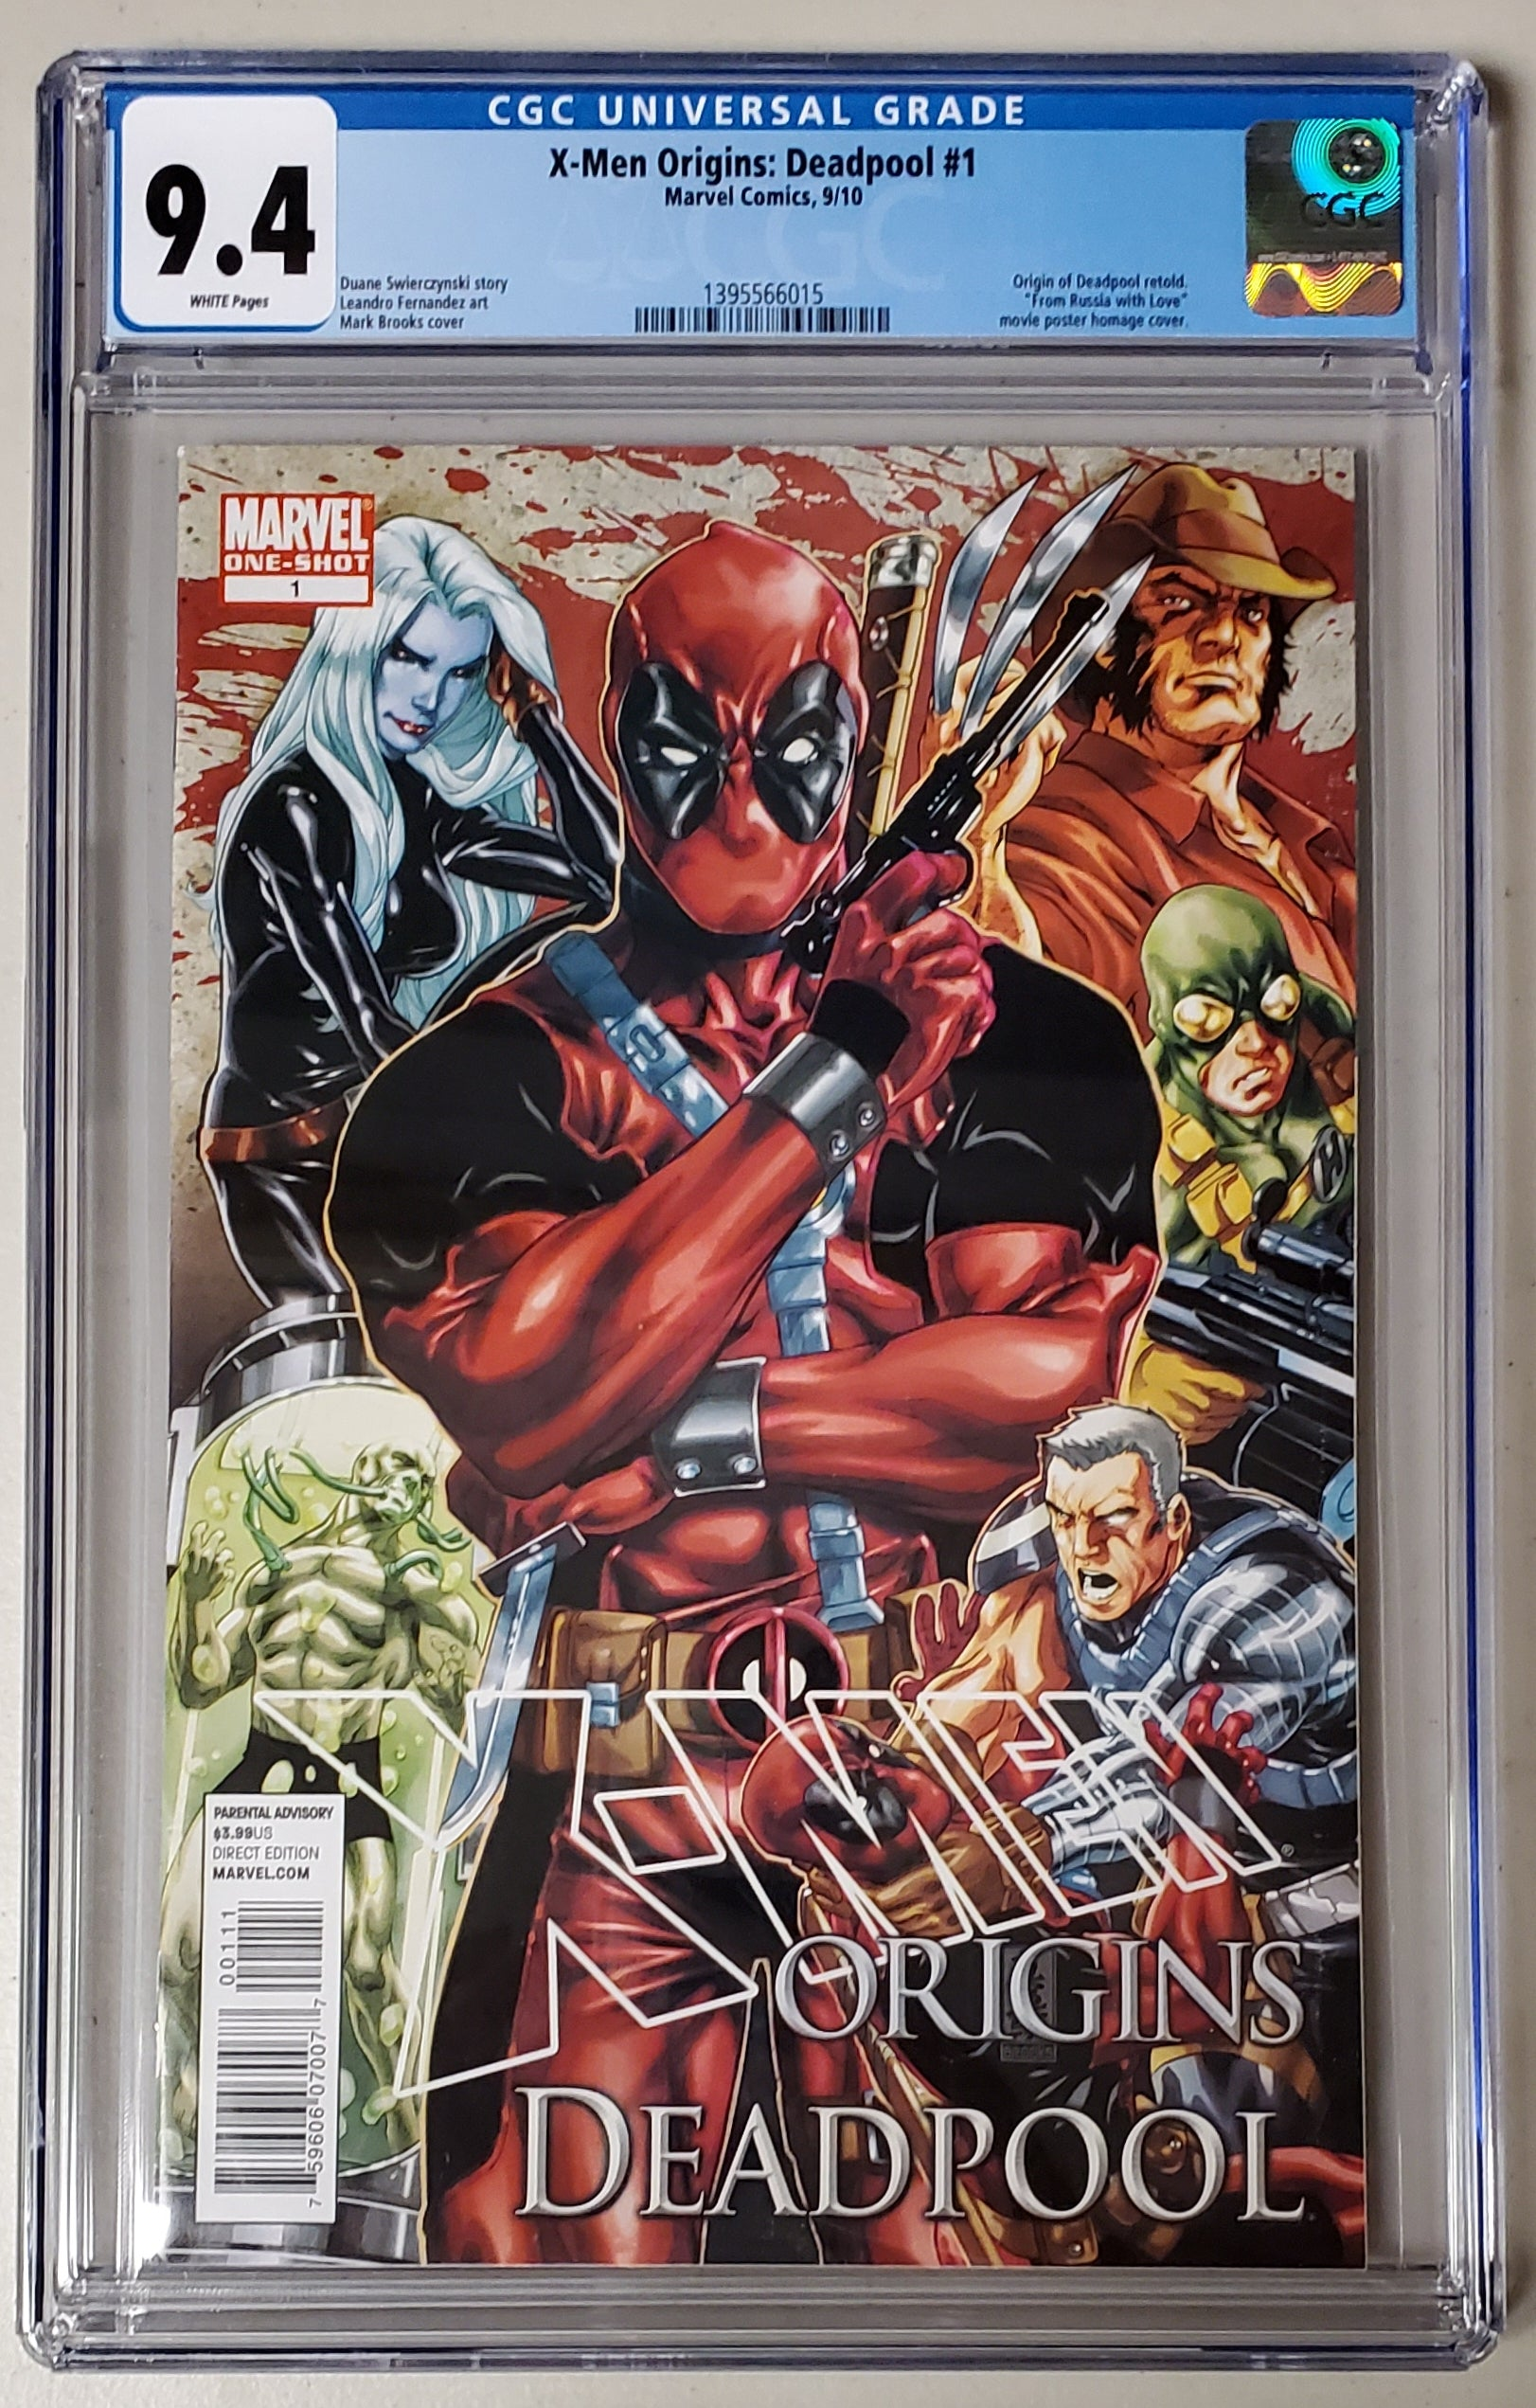 9.4 CGC X-Men Origins Deadpool #1 Mark Brooks Marvel Comics 2010